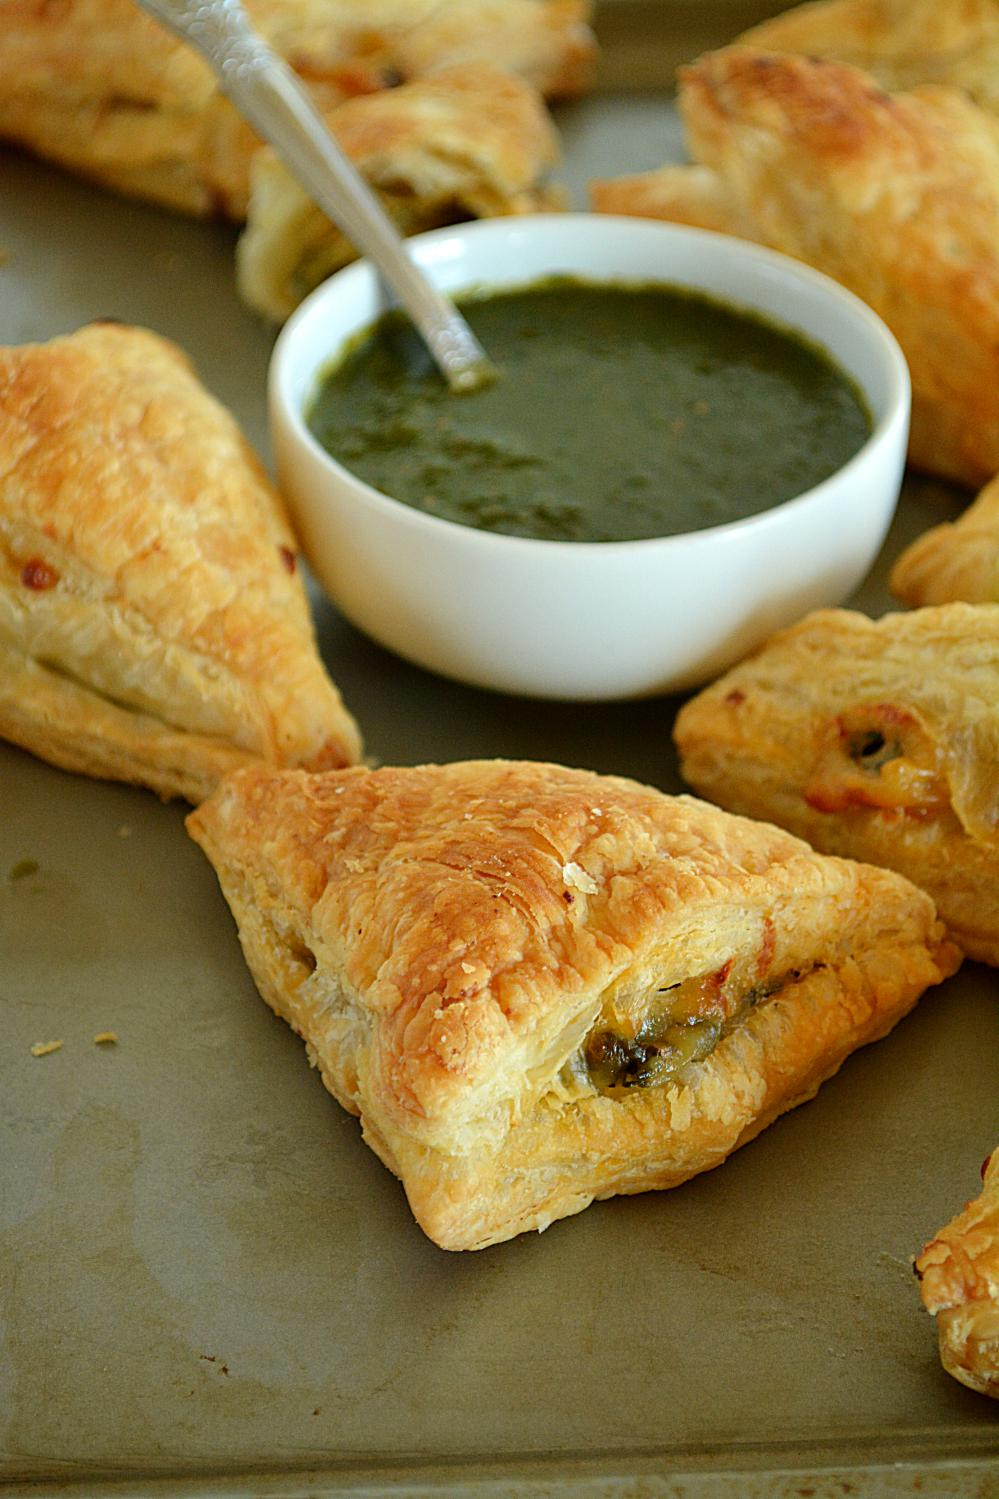 Cheesy Broccoli And Spinach Puffs | Spice up your party with these crispy and flaky Cheesy Broccoli And Spinach Puffs! | www.ruchiskitchen.com